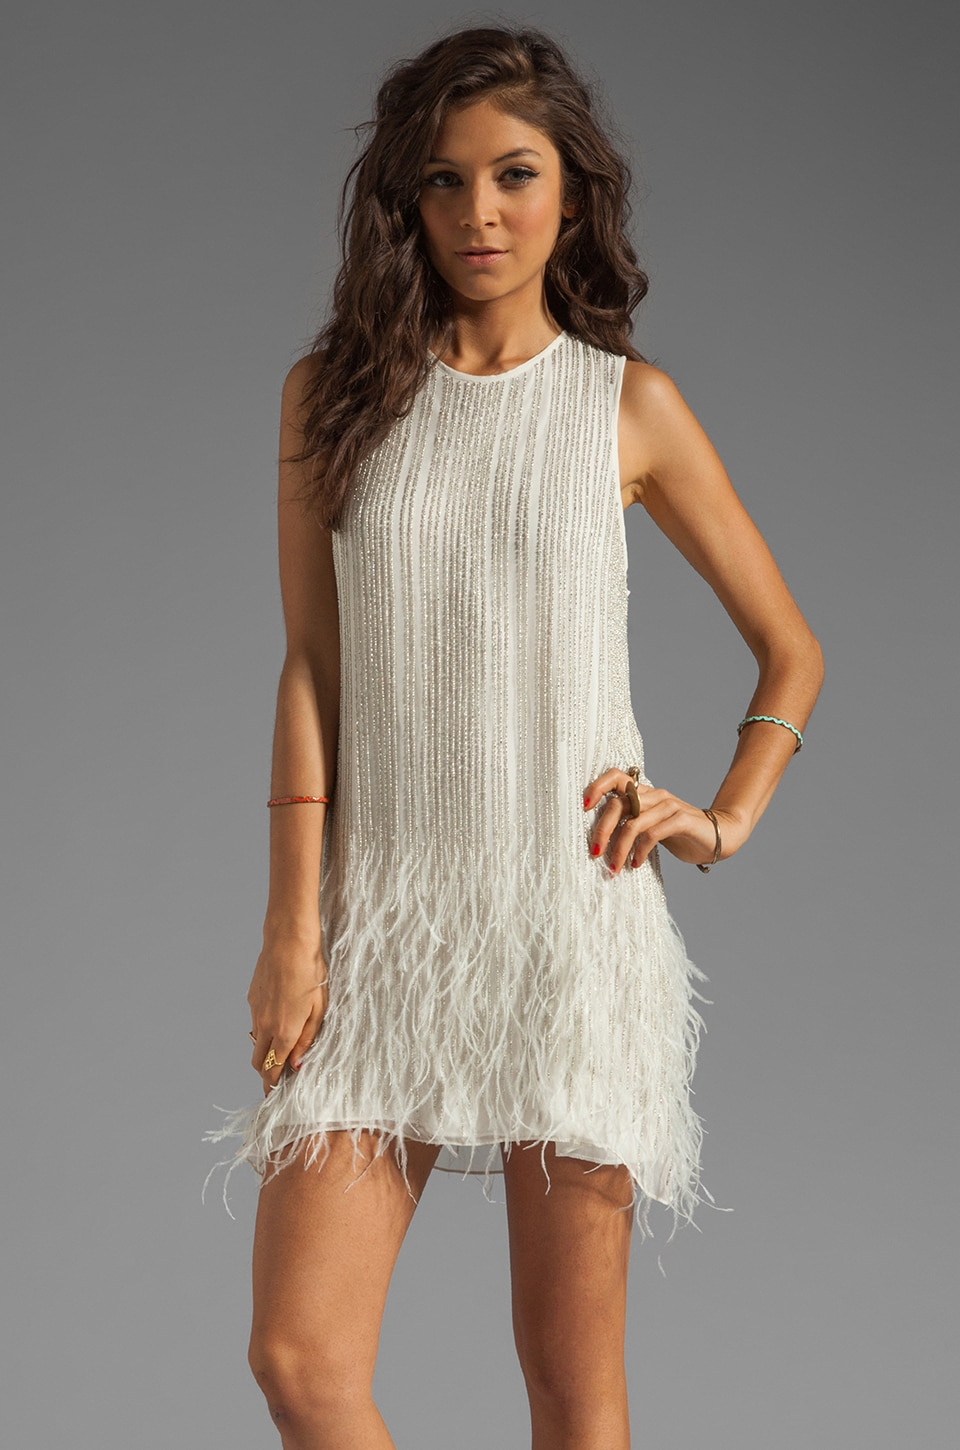 Parker Allegra Feather Beaded Dress in Linen